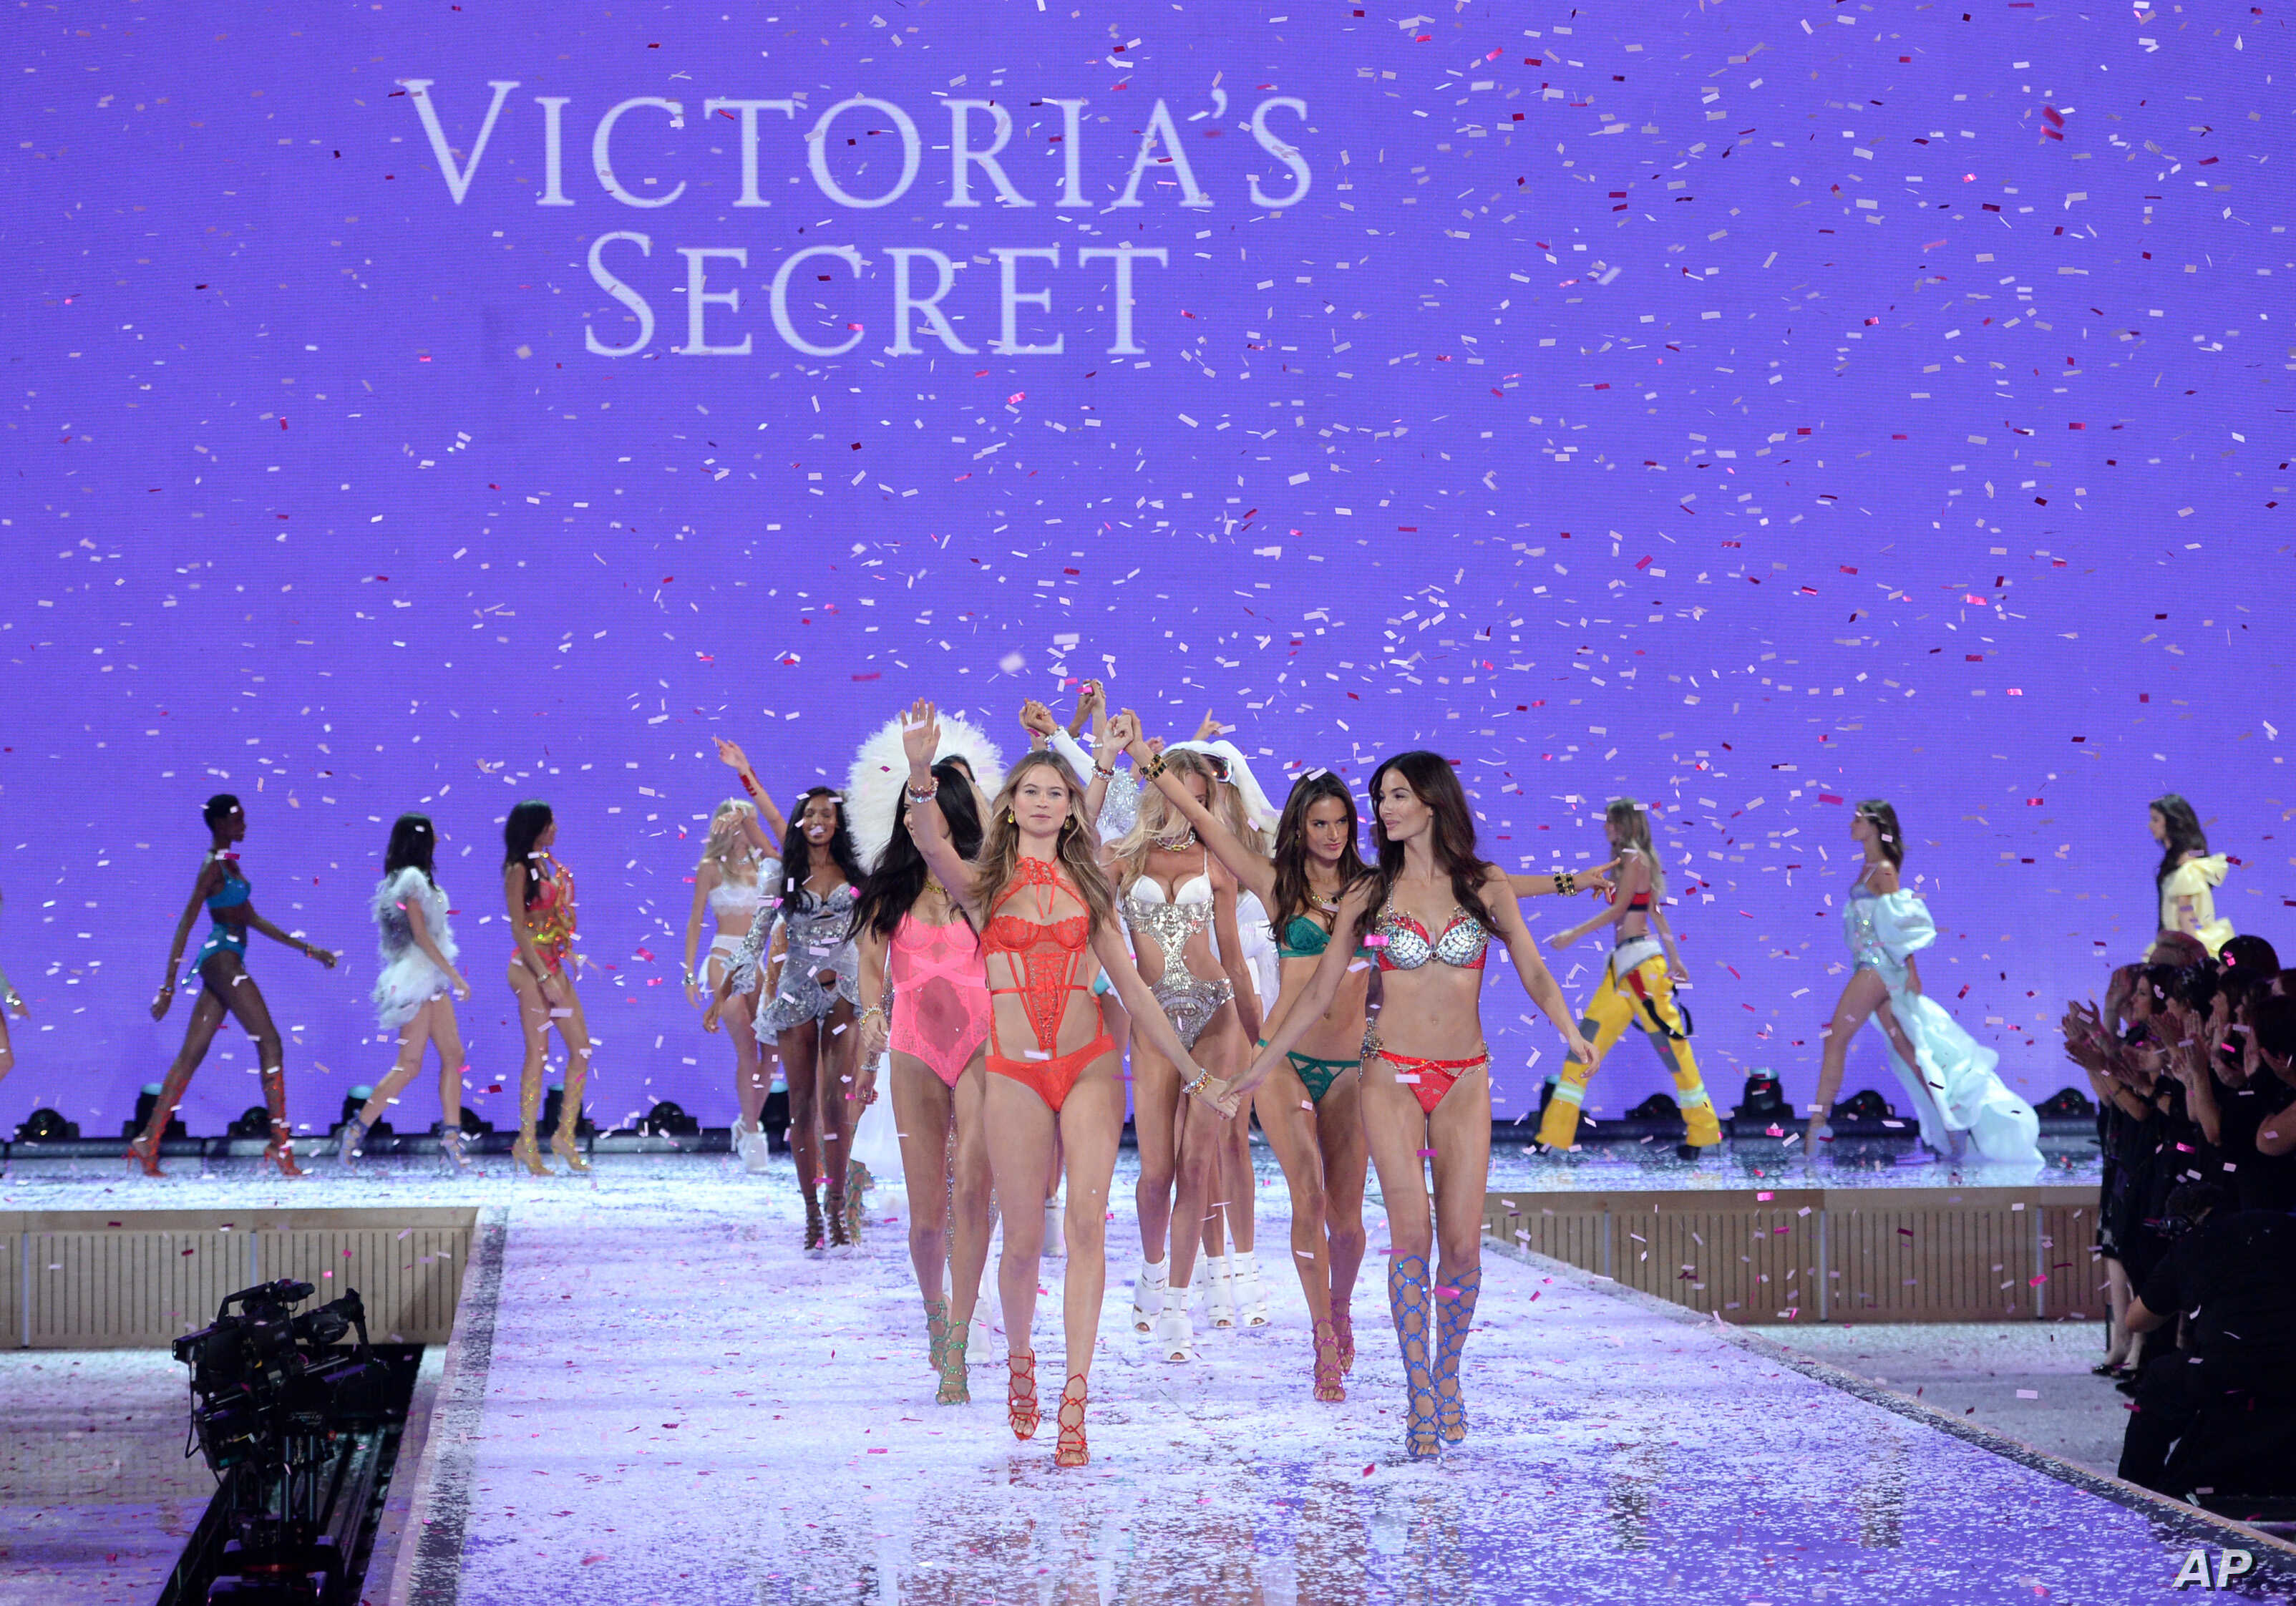 Models including Behati Prinsloo, front left, and Lily Aldridge, front right, walk the runway during the Victoria's Secret Fashion Show at the Lexington Armory on Nov. 10, 2015, in New York.